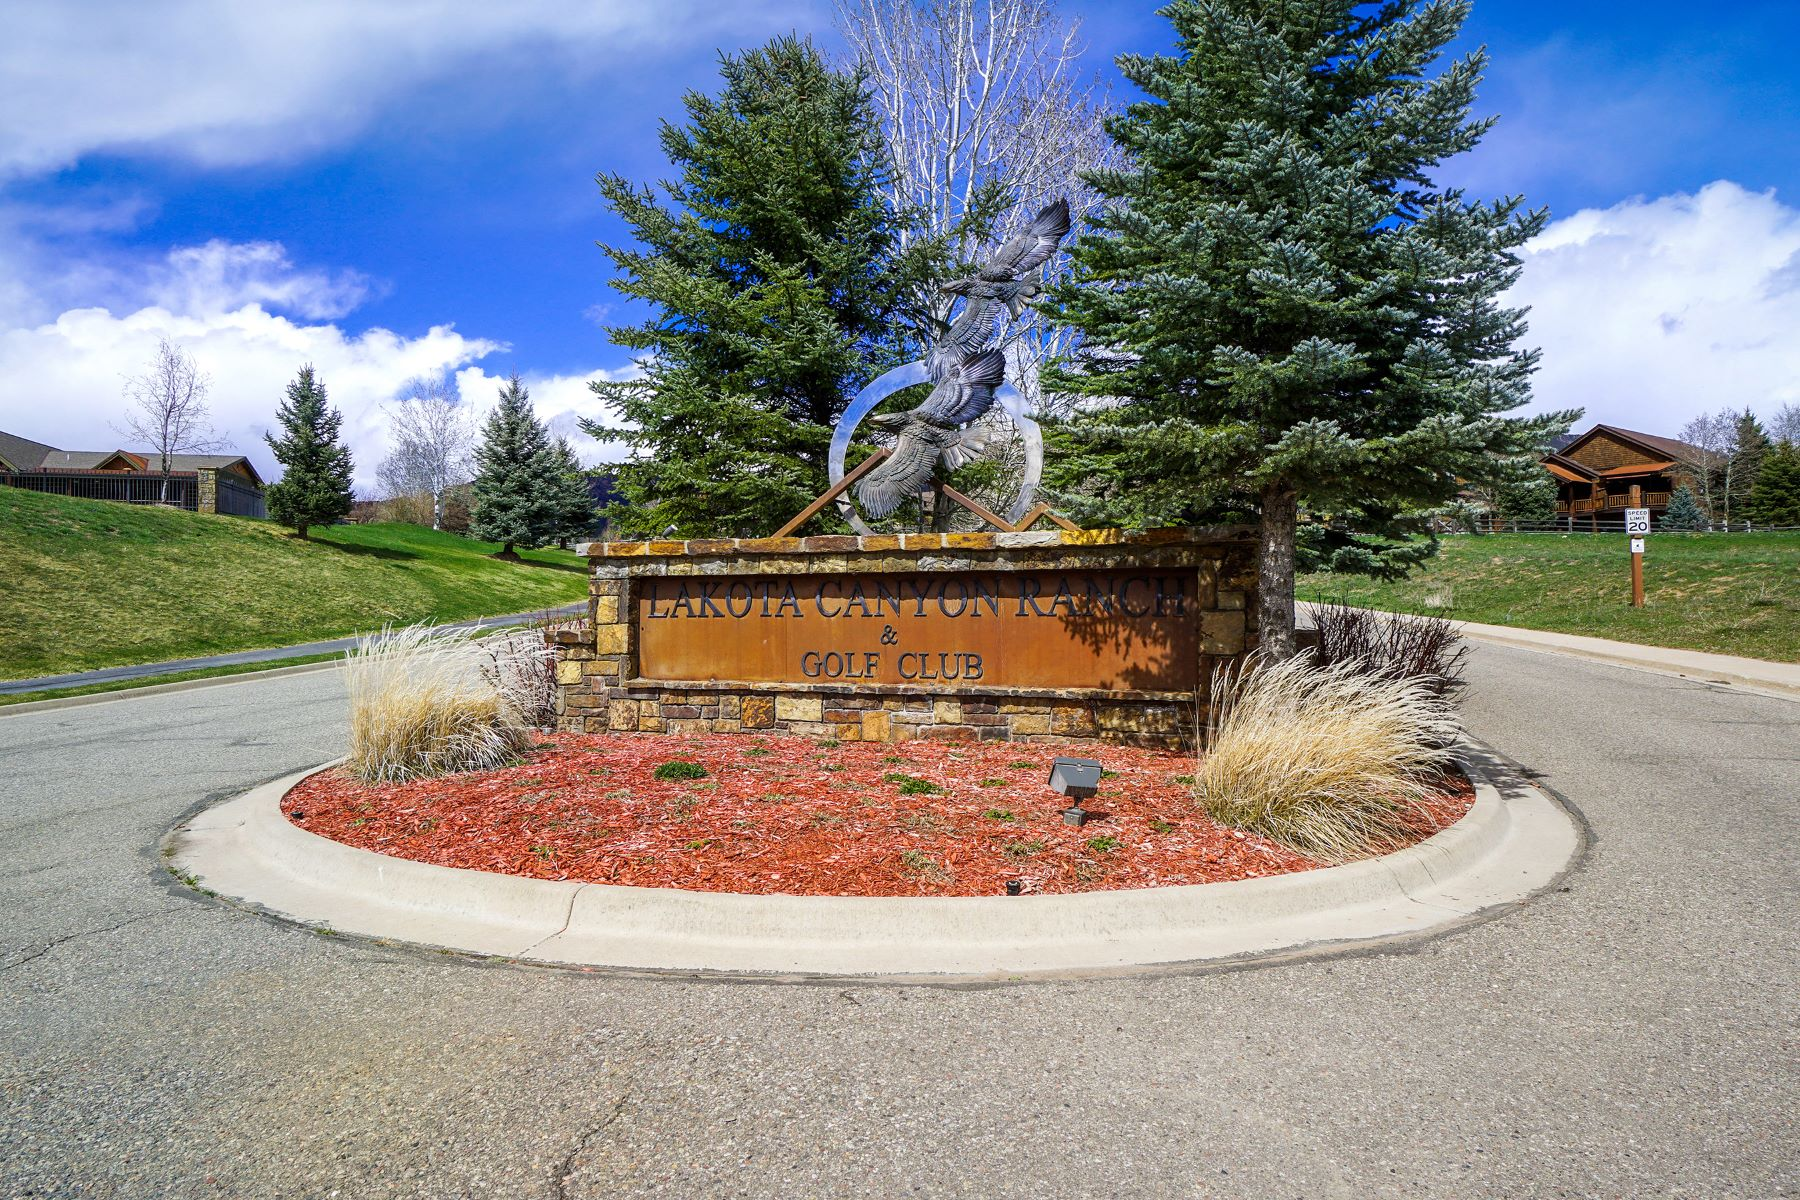 Terreno por un Venta en LAKOTA CANYON RANCH, FILING 5, LOT 26 TBD Deer Valley, New Castle, Colorado 81647 Estados Unidos